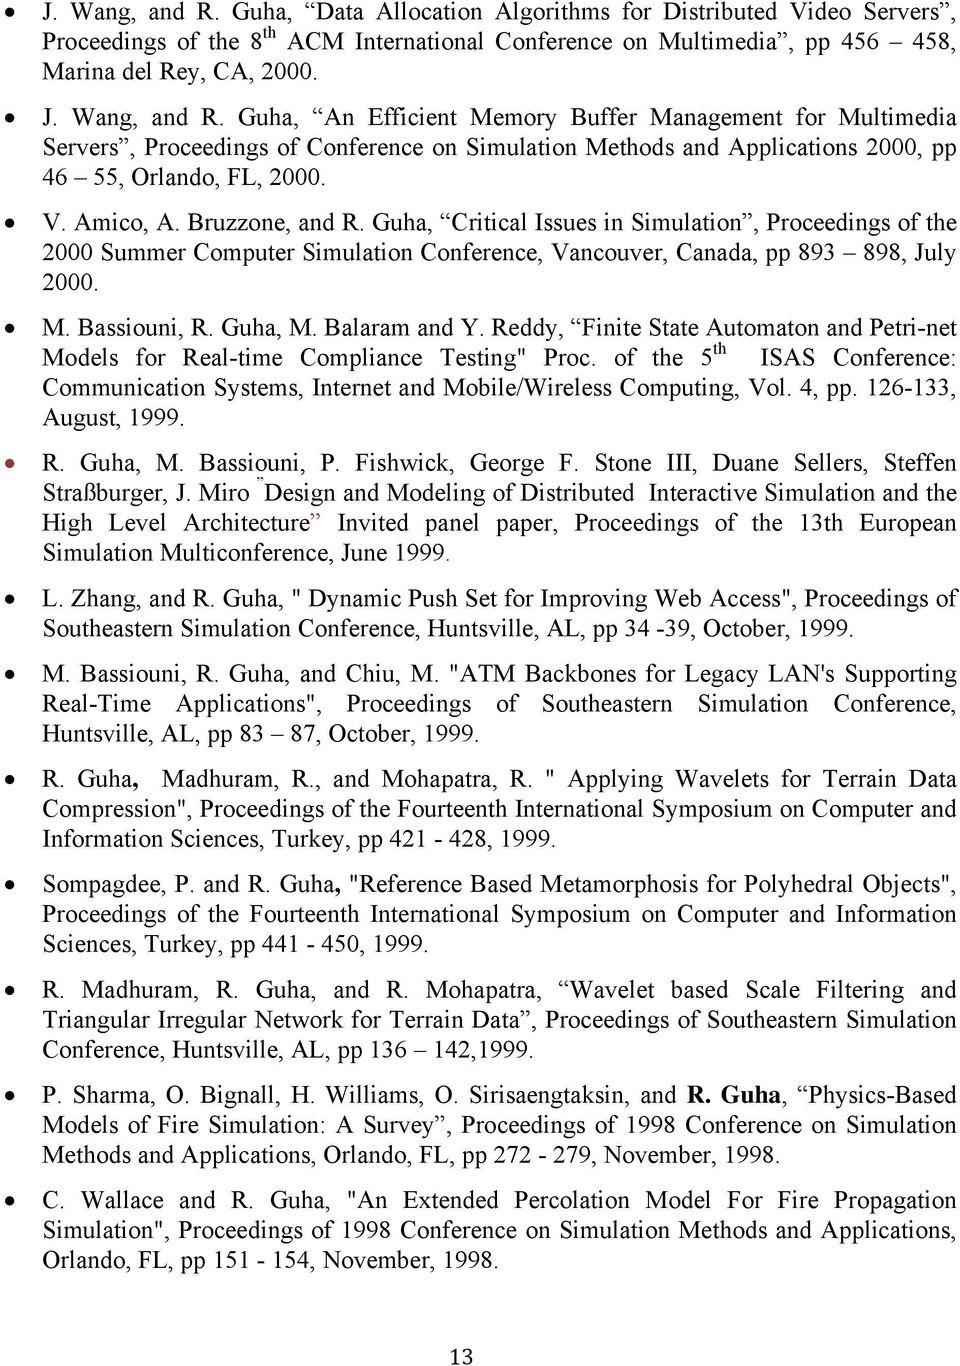 Bruzzone, and R. Guha, Critical Issues in Simulation, Proceedings of the 2000 Summer Computer Simulation Conference, Vancouver, Canada, pp 893 898, July 2000. M. Bassiouni, R. Guha, M. Balaram and Y.